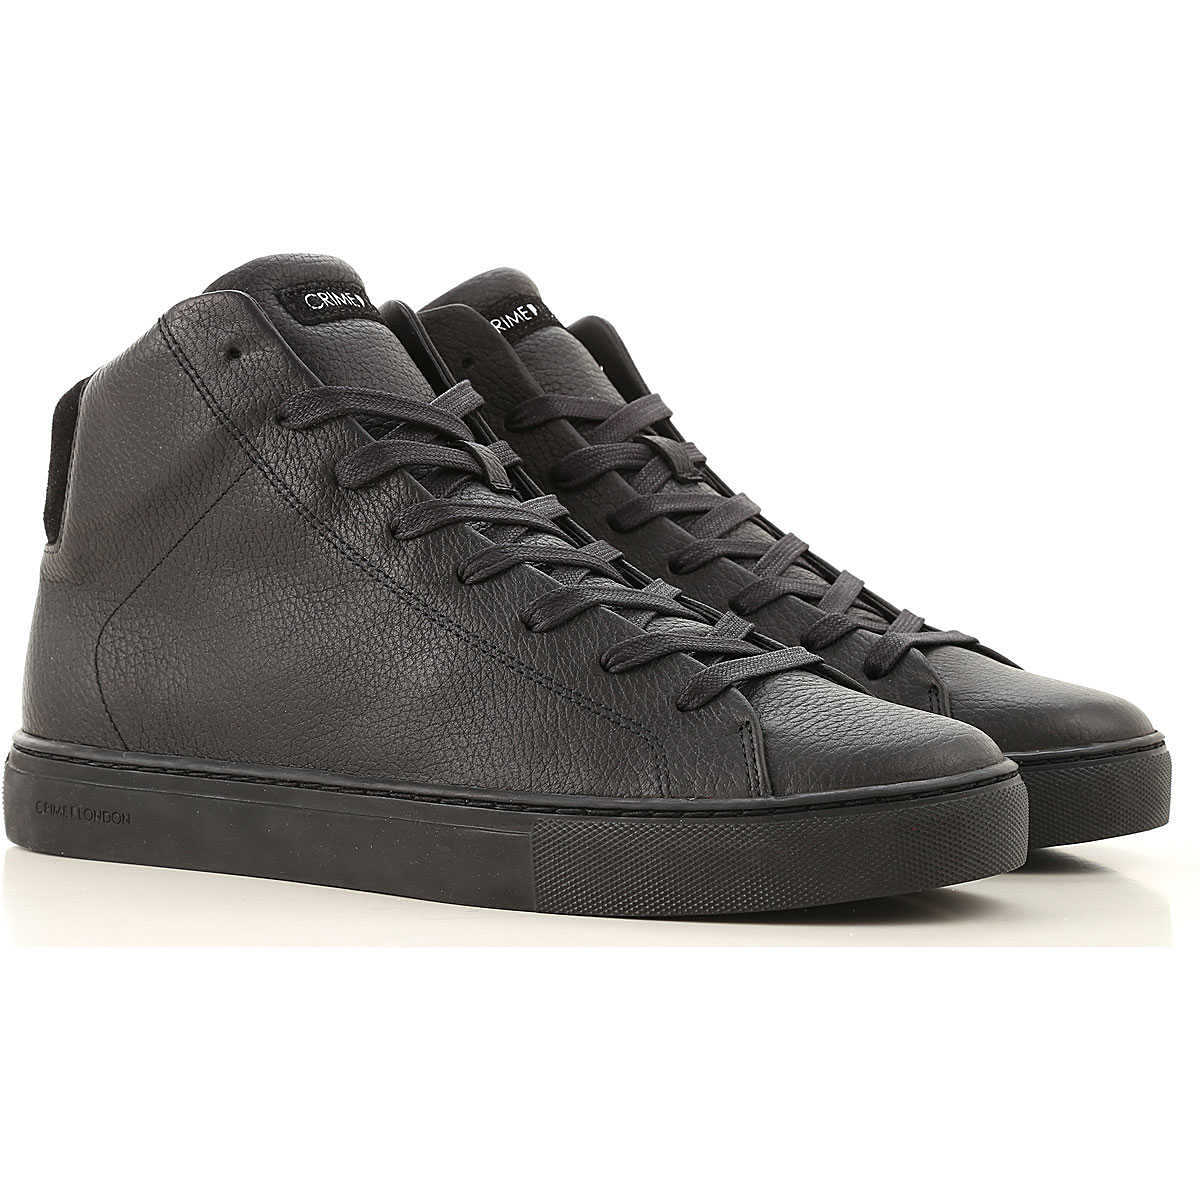 Crime Lace Up Shoes for Men Oxfords 10.5 6.5 7 8 9 9.5 Derbies and Brogues UK - GOOFASH